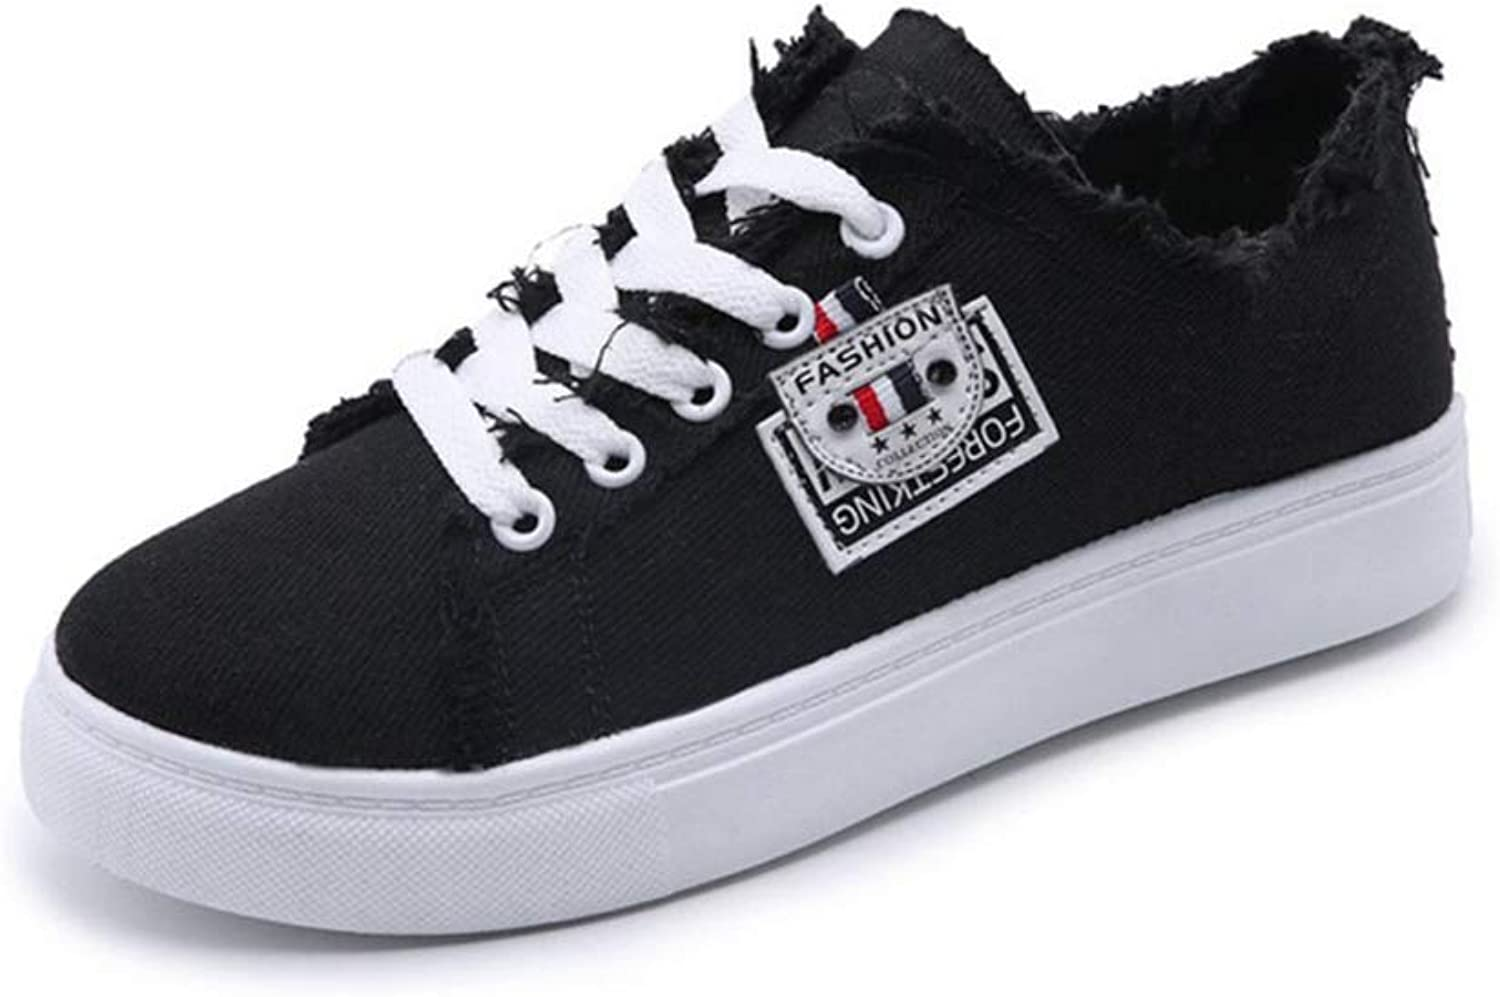 Women's Casual Low Cut Breathable Non-Slip Canvas shoes Wild lace-up Sneakers